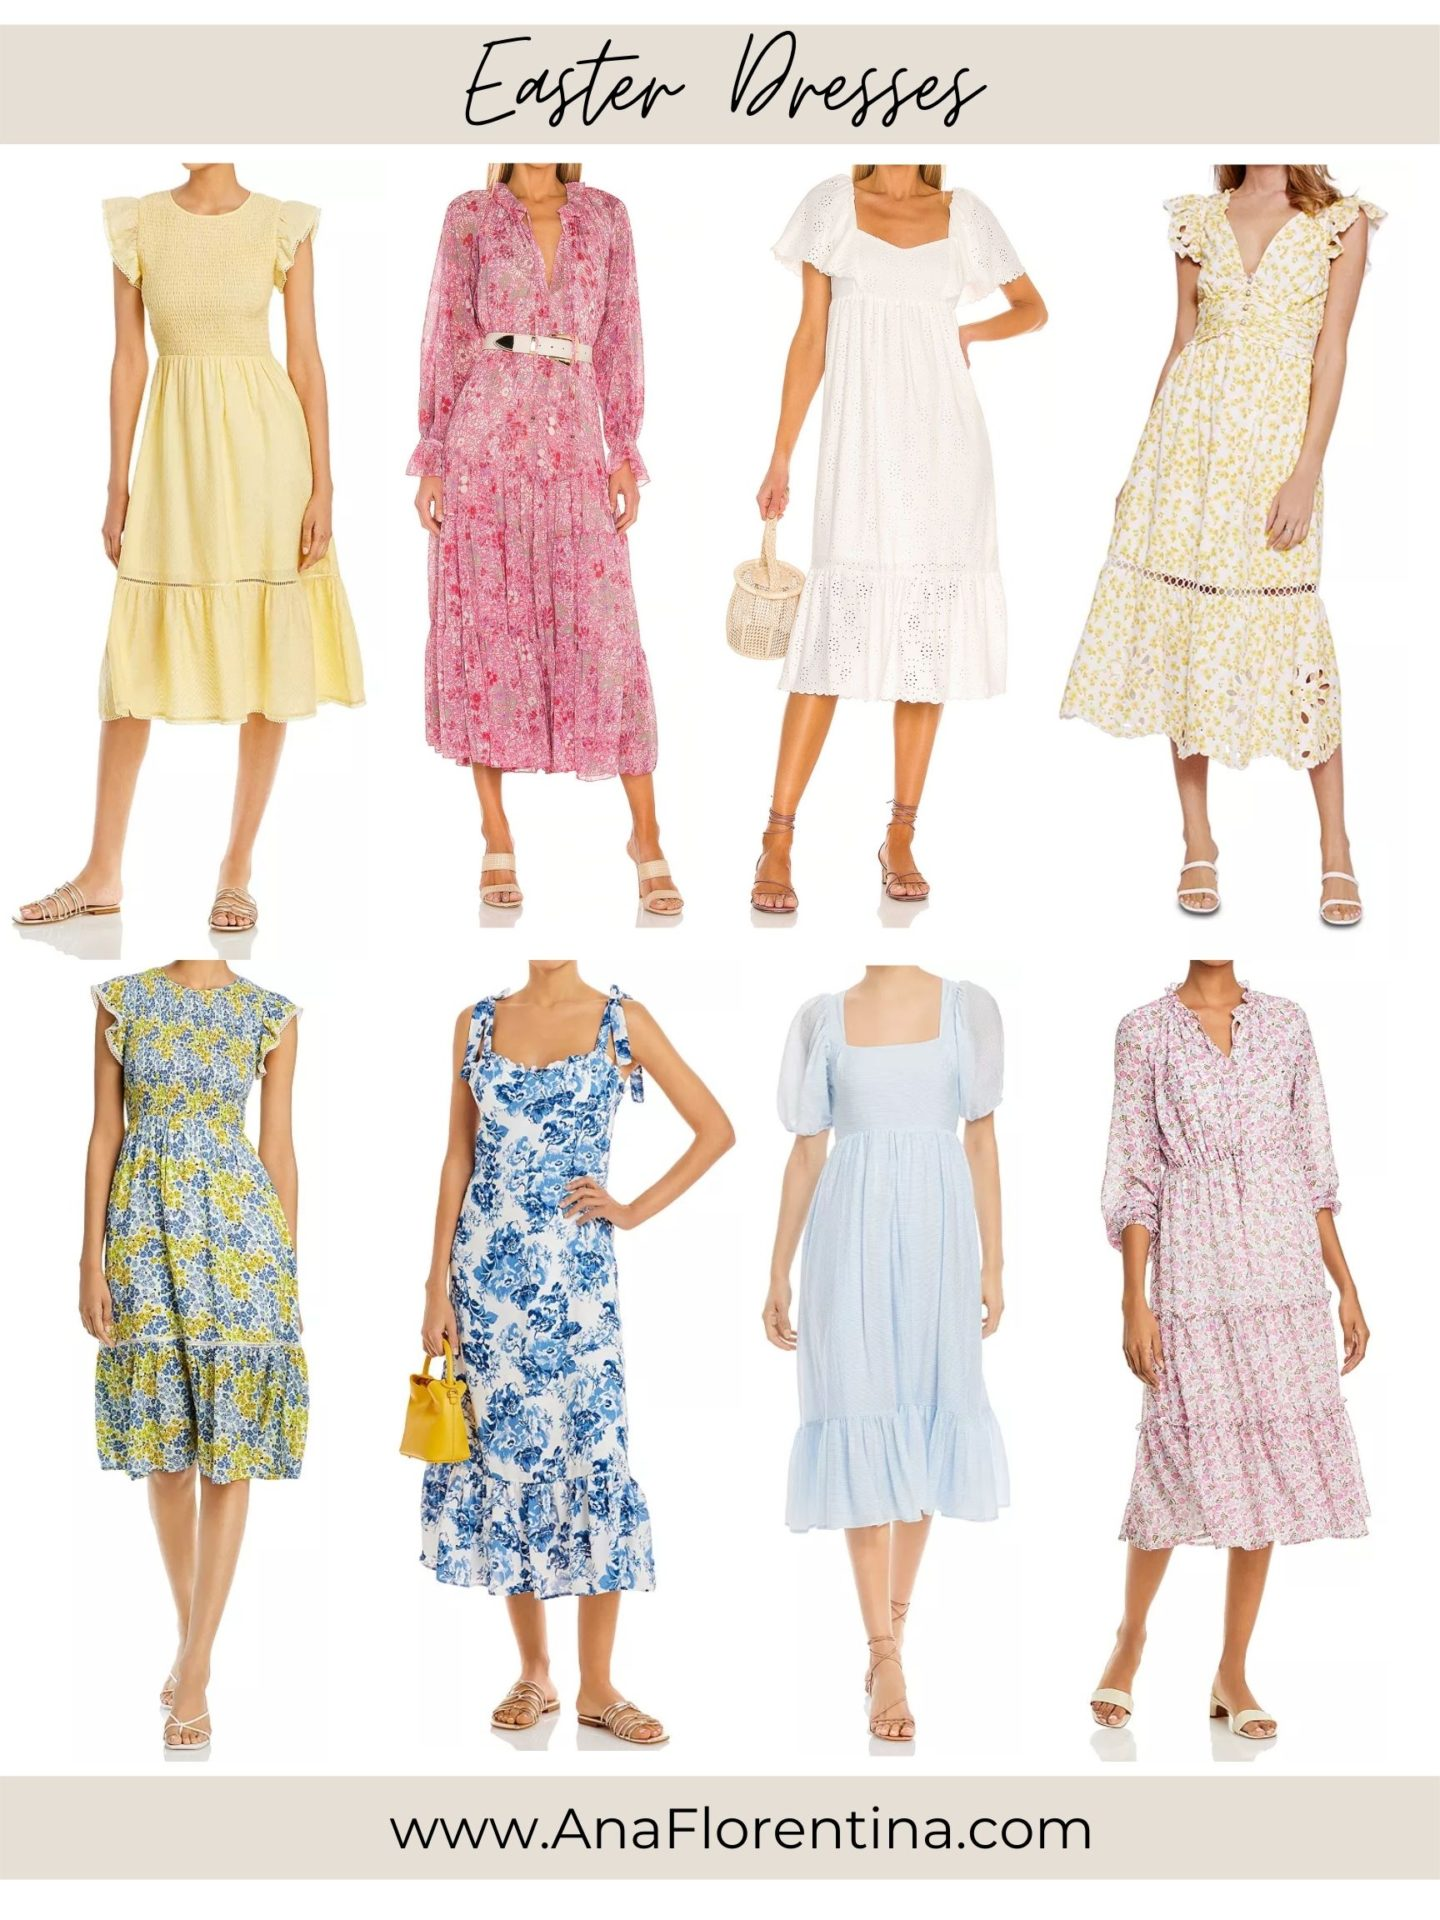 Easter dresses outfit ideas by Ana Florentina